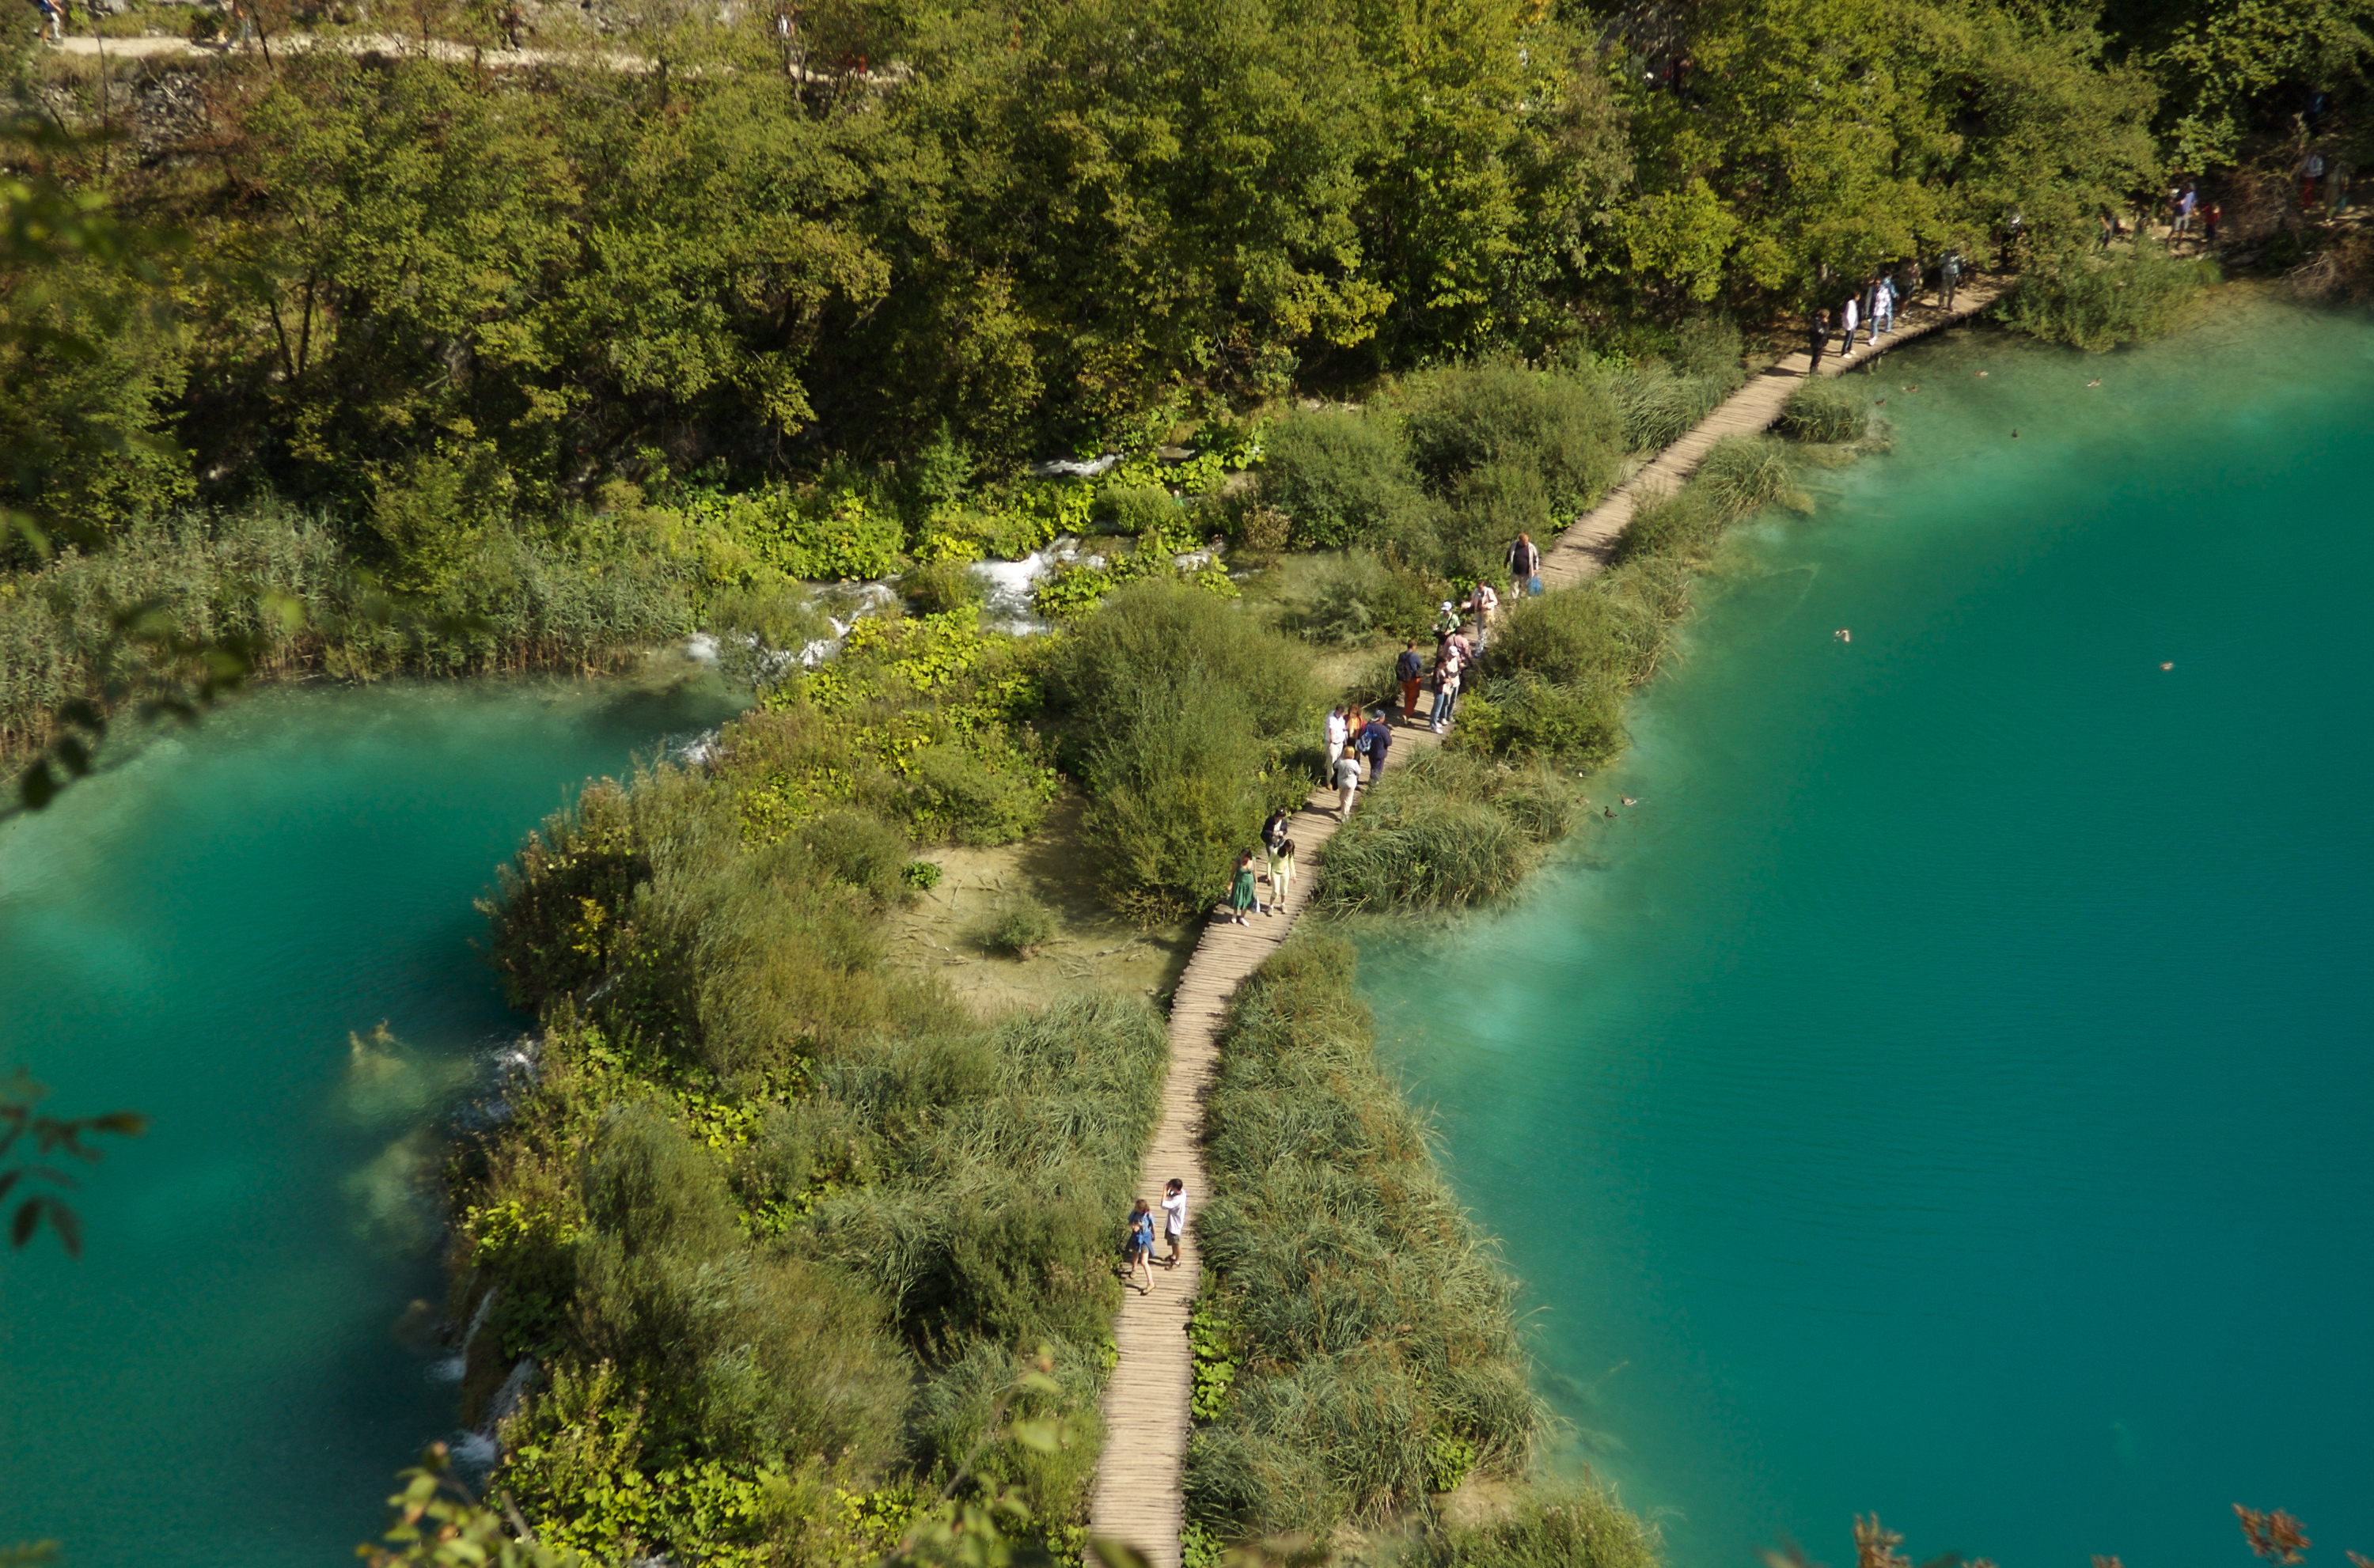 Gawp at Plitvice